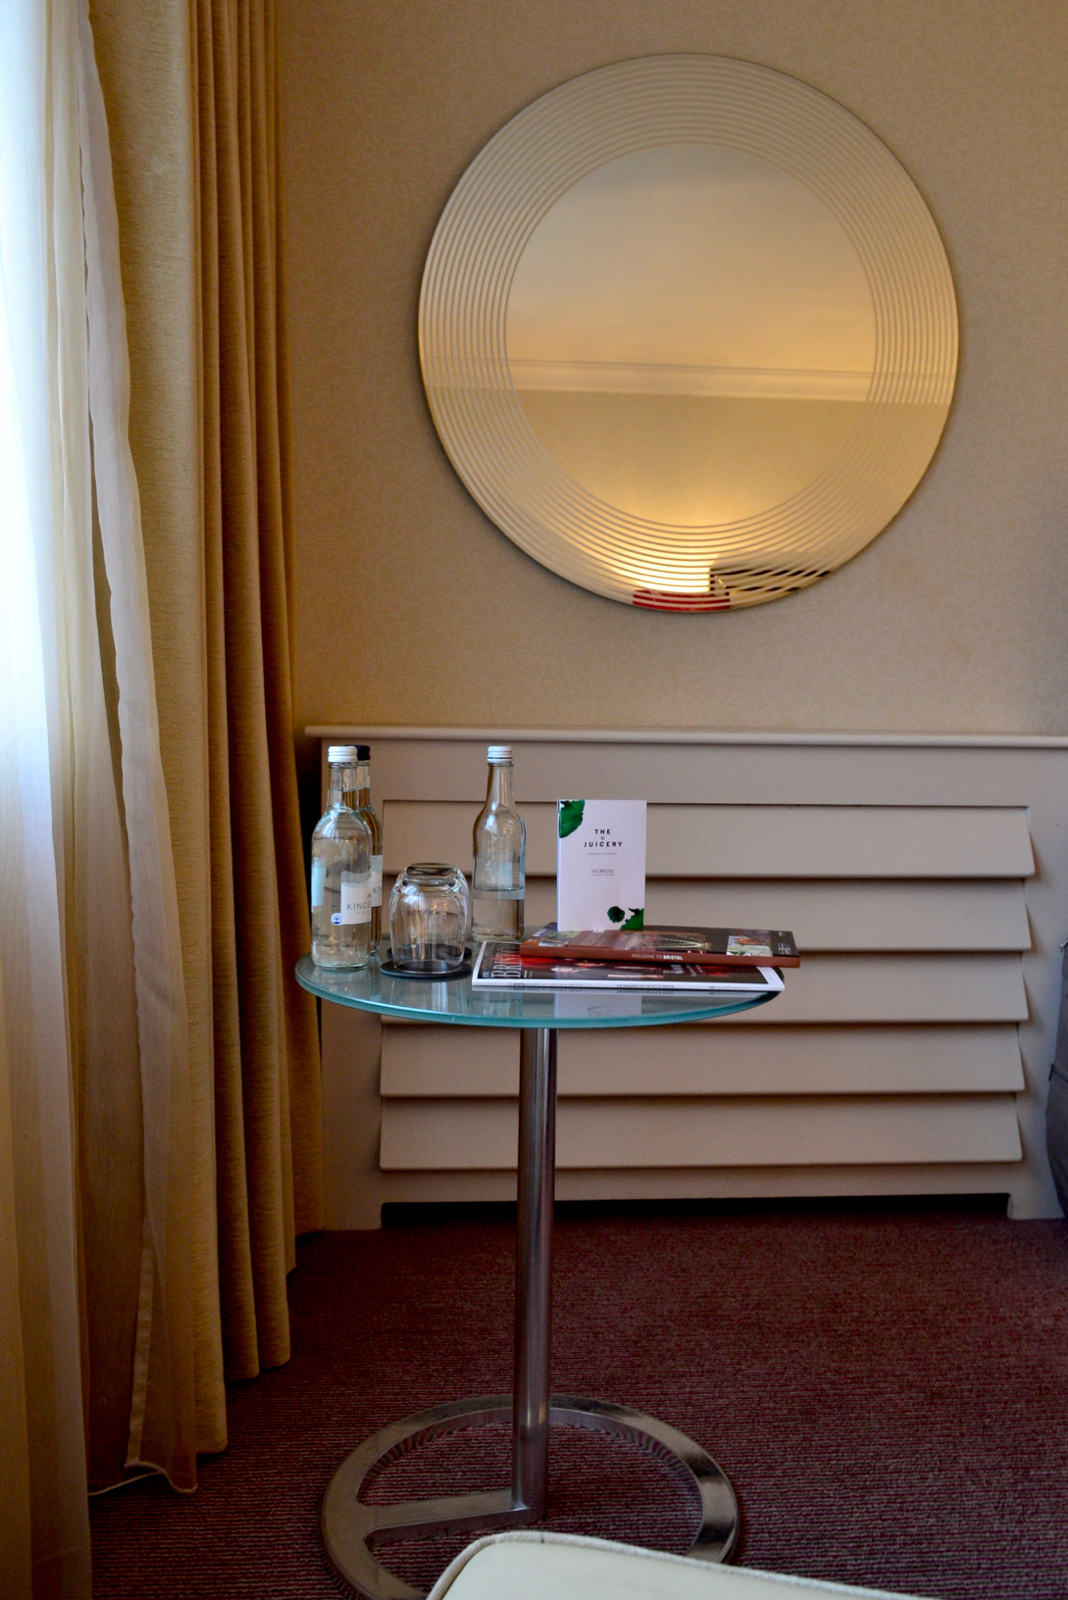 The Bristol, Bristol Hotel, Bristol Doyle Collection, best hotel Bristol, Bristol hotels city centre, Bristol hotel blog review, gastrogays The Bristol, Bristol gastrogays